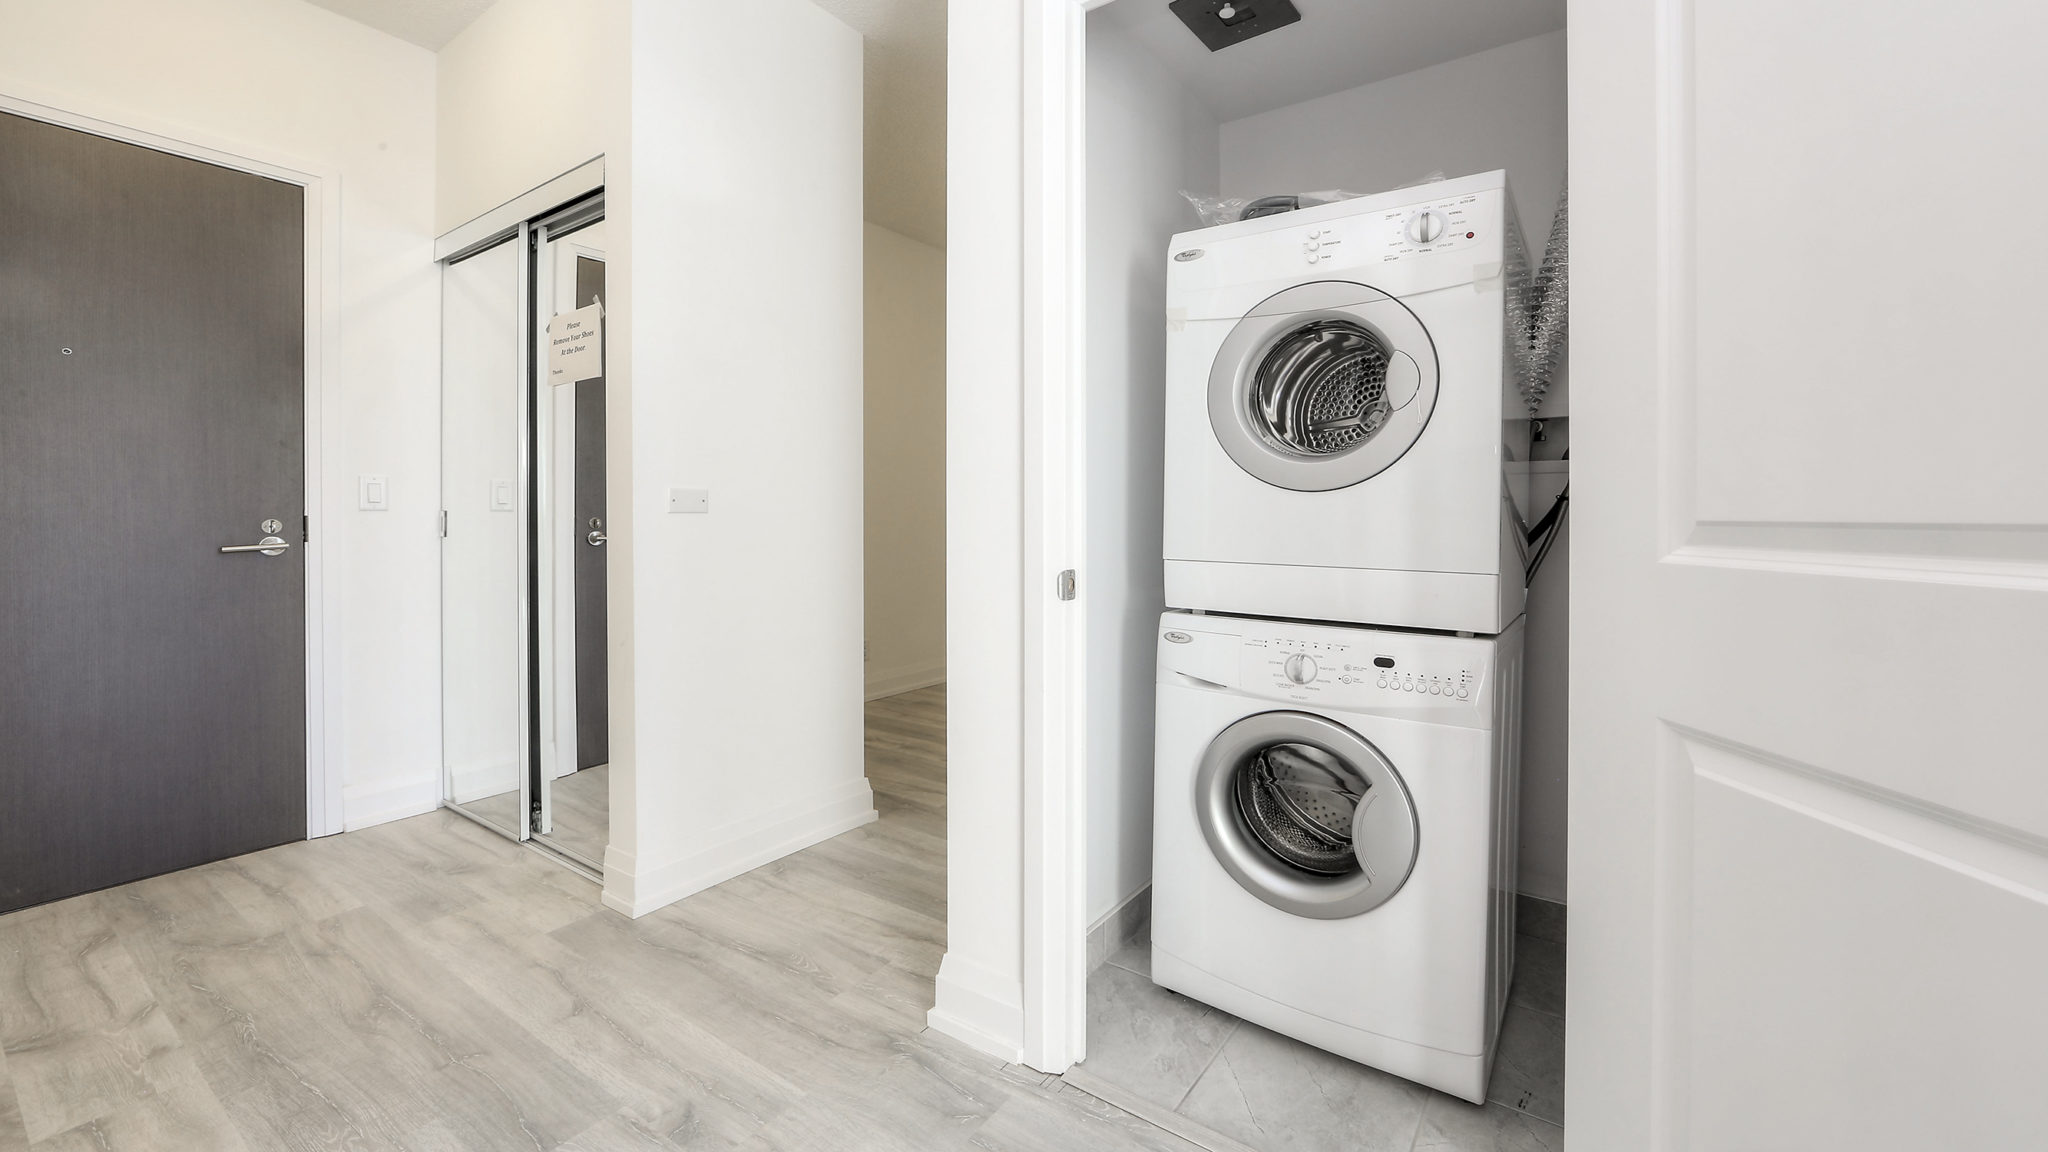 Image showing washer and dryer one on top of another to save space.